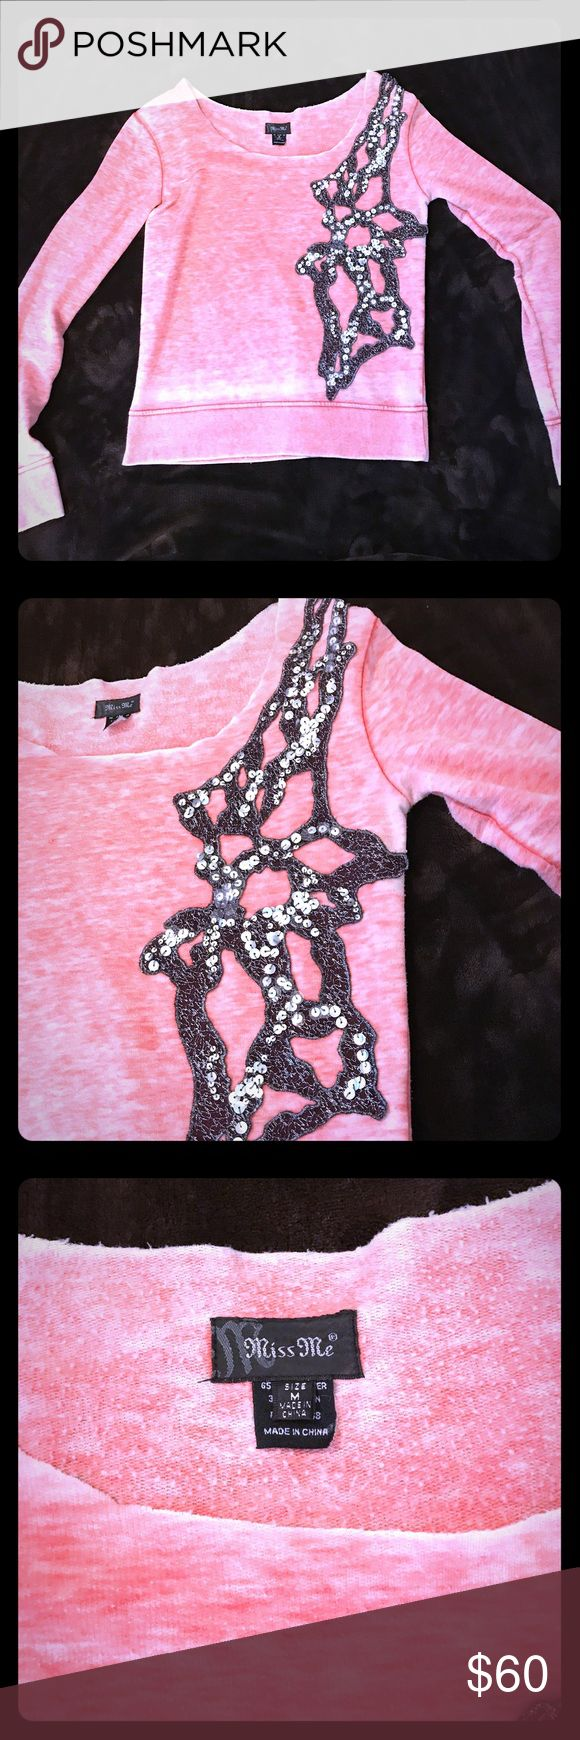 Miss Me slouchy l/s top SEE ALL PICS!! 😍😍 M This is a super cute and fun lounge/slouchy l/s top. Silver sequins accent this top. Color was a little hard to capture but it's a a very pretty peachy/coral almost pink color. Worn this top a handful of times, still in EXCELLENT condition... every Sequin intact. Smoke/pet free home. Miss Me Tops Sweatshirts & Hoodies